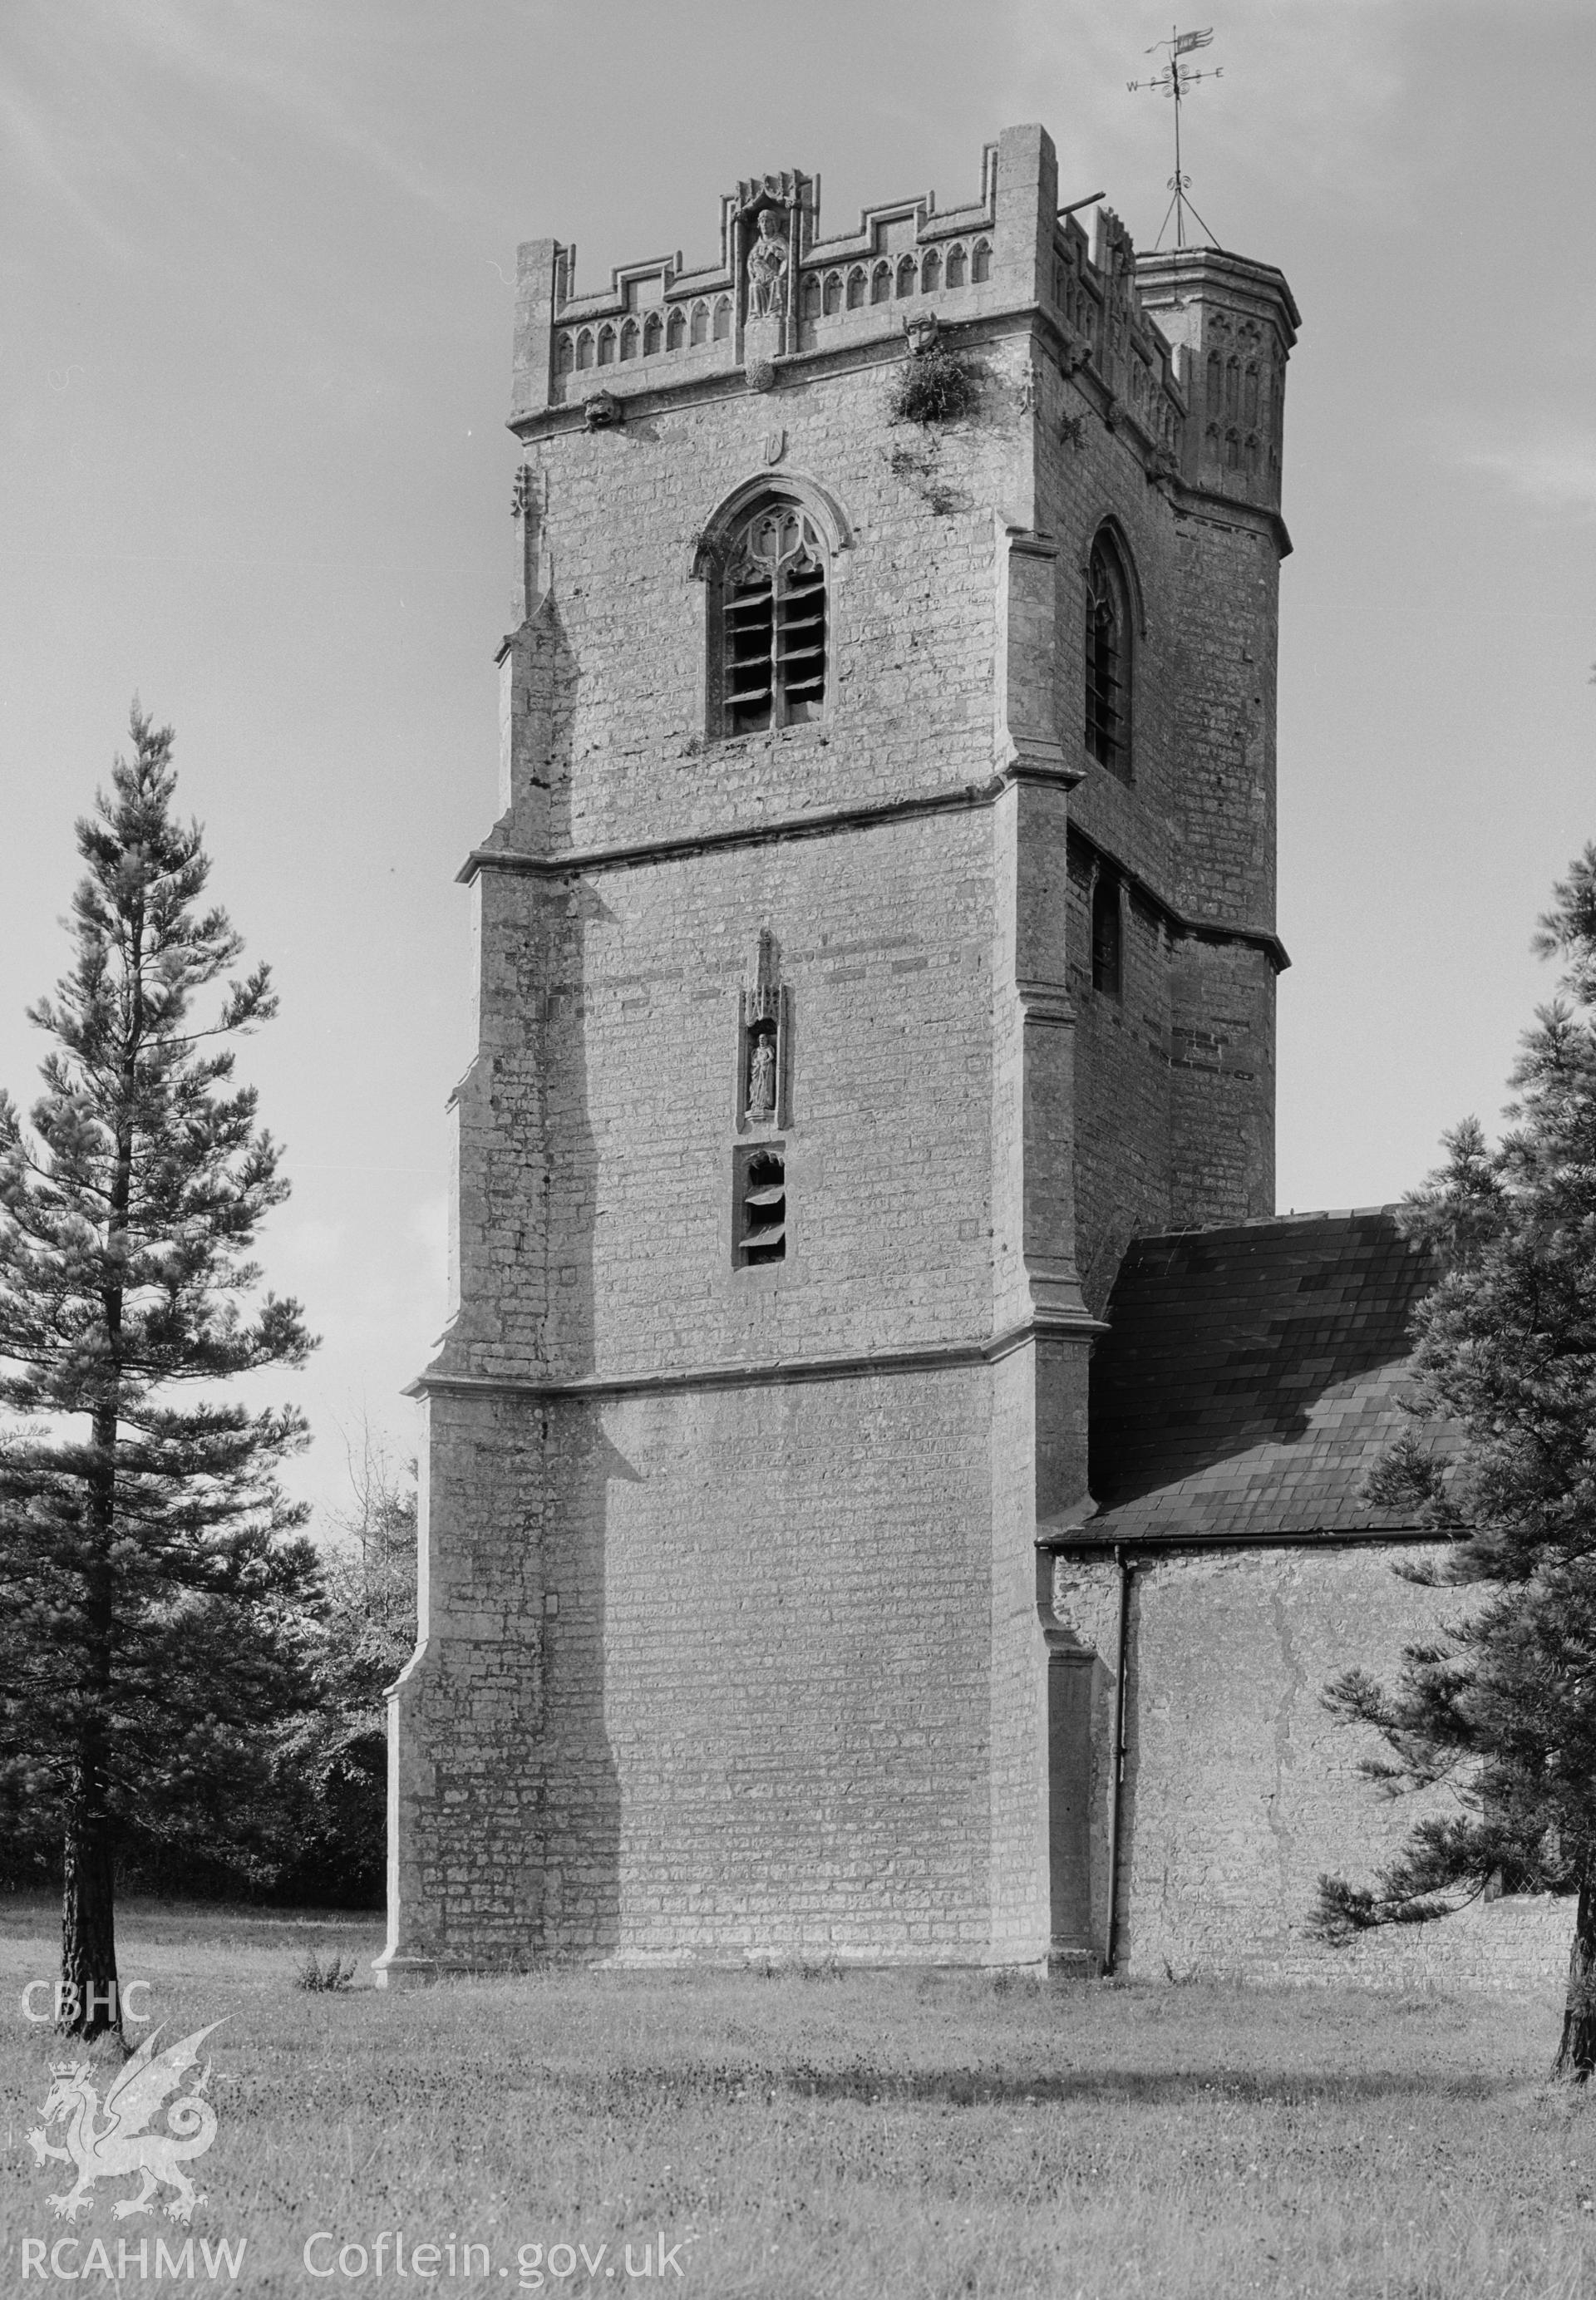 The tower at St Bride's Church from the southeast, taken by Clayton.